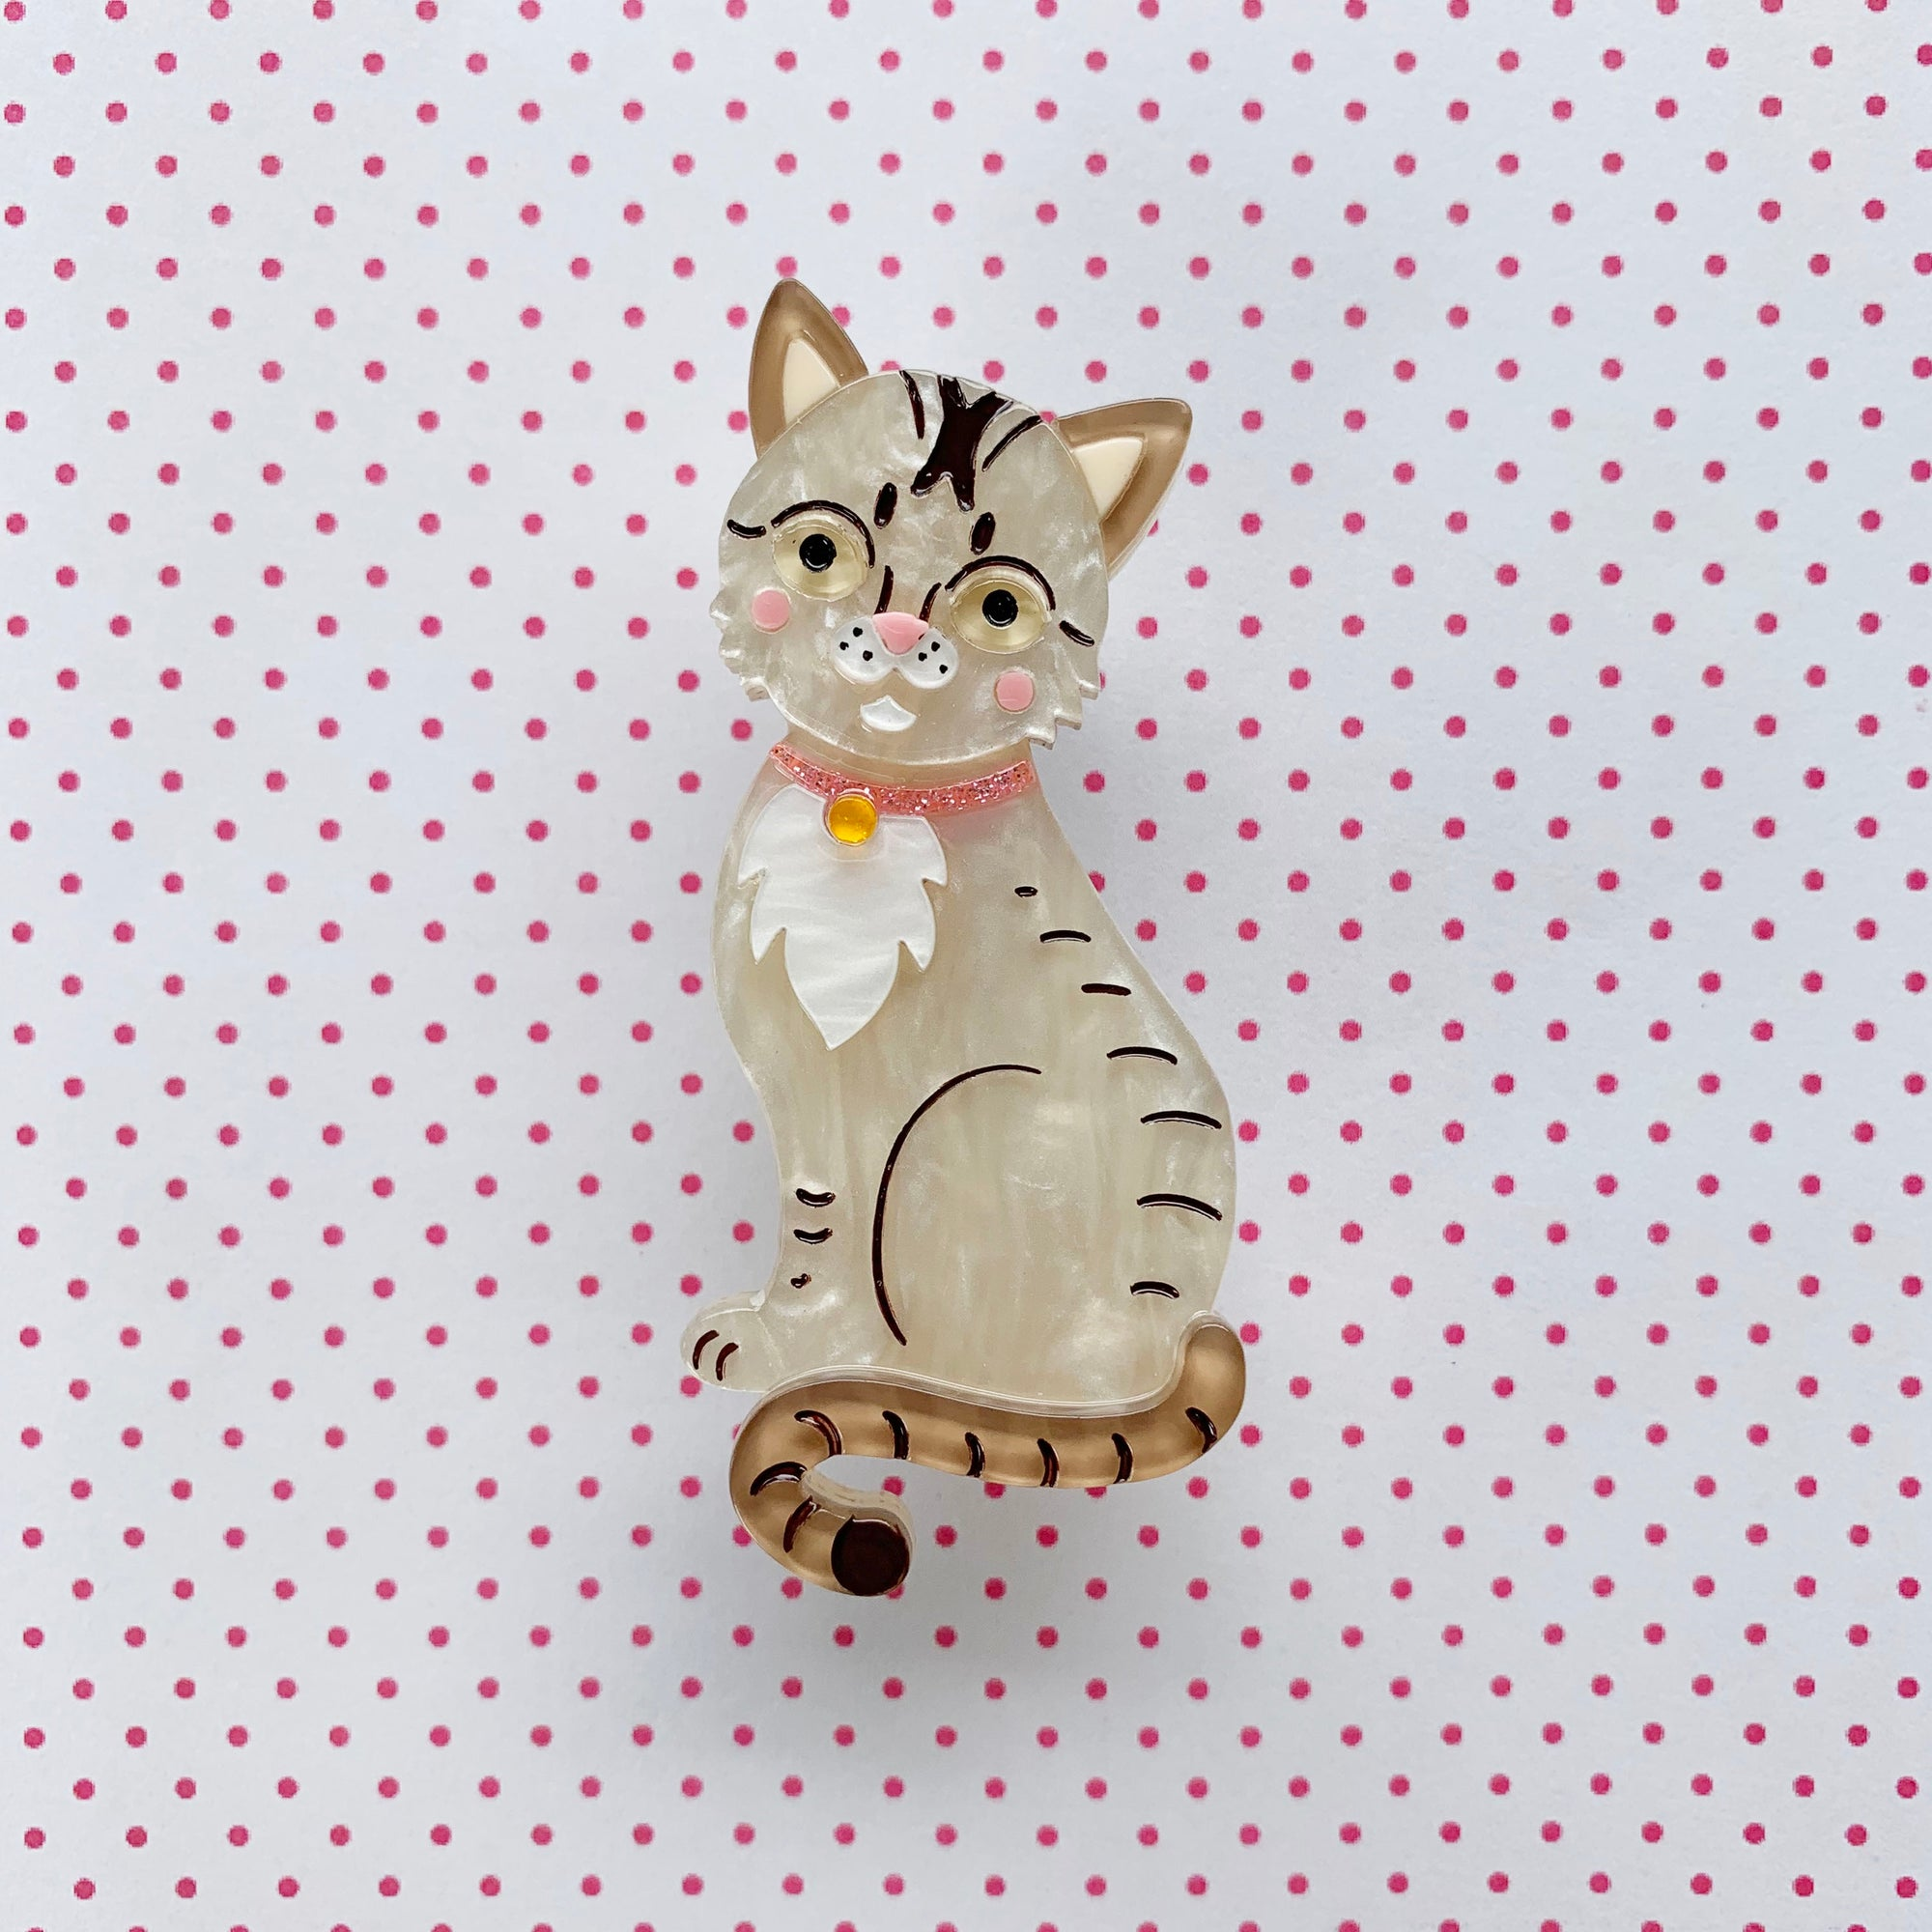 Comel the Singapura 'Kucinta' Cat Brooch 🐱